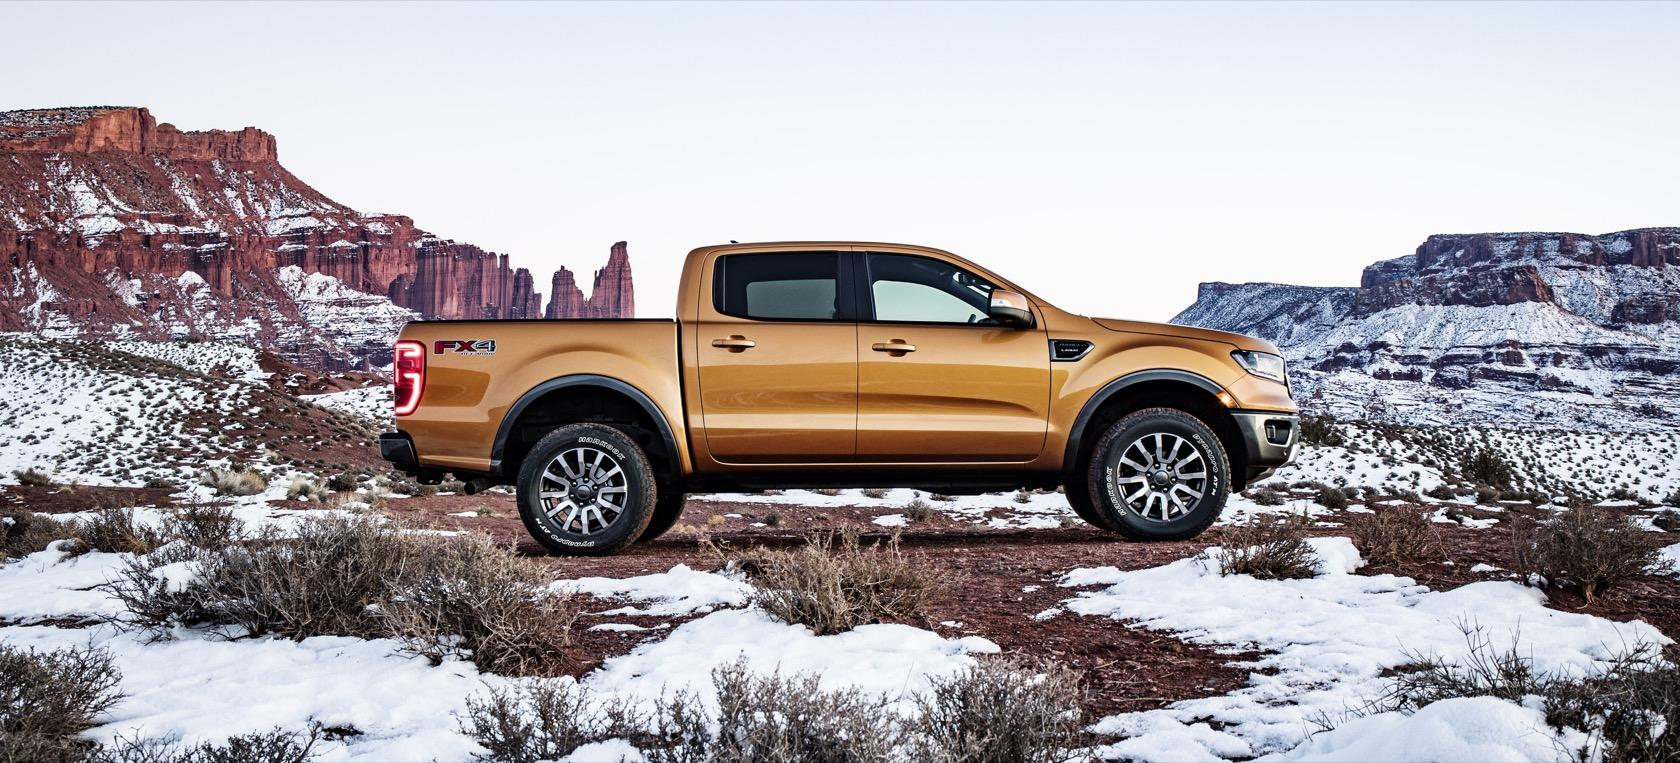 2019 Ford Ranger revealed in Detroit with 2 3L EcoBoost